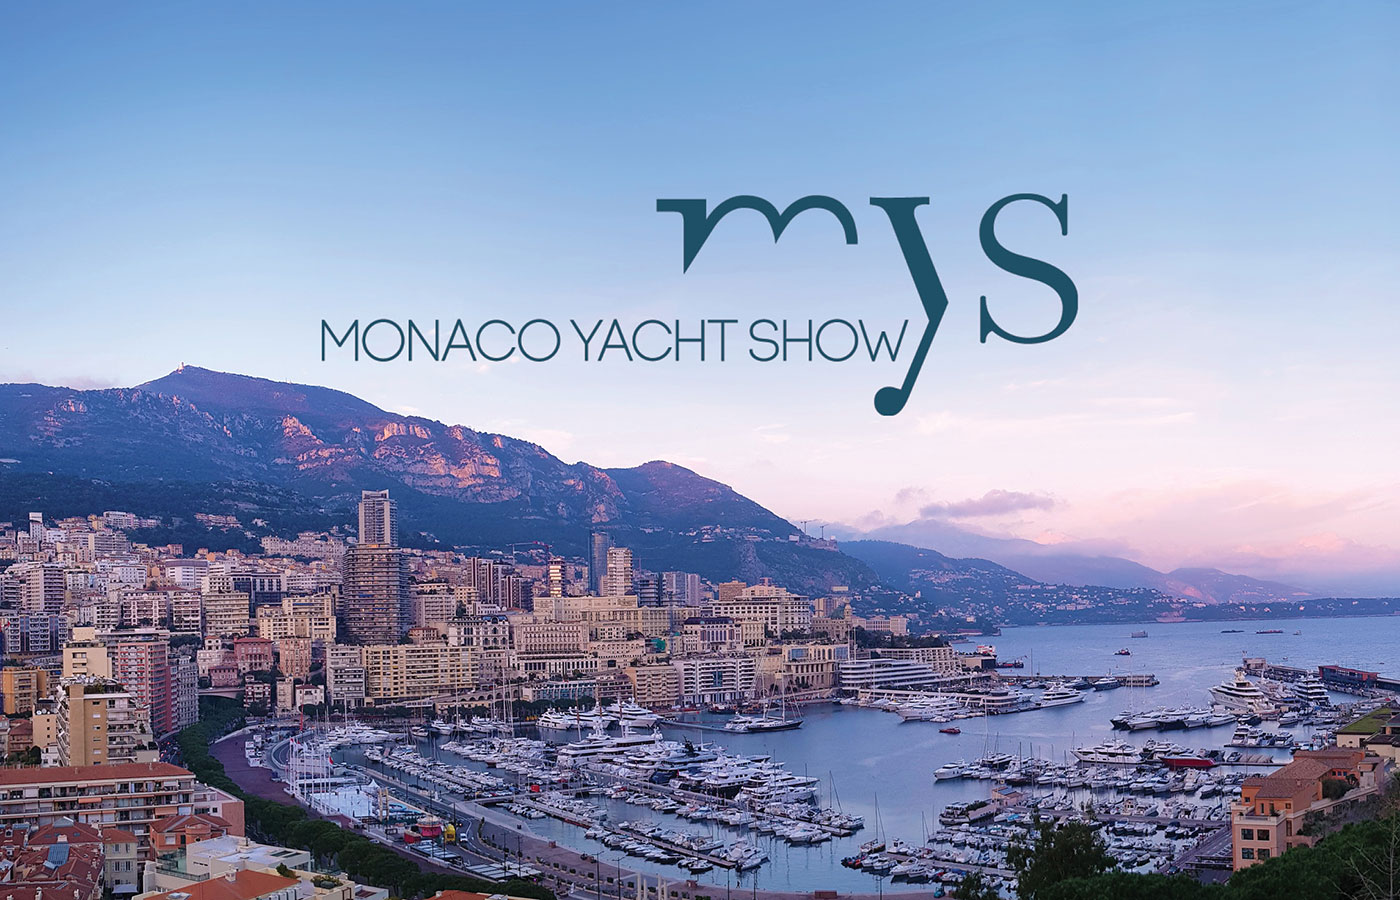 Top 5 Biggest Boats Monaco Yacht Show + Guide